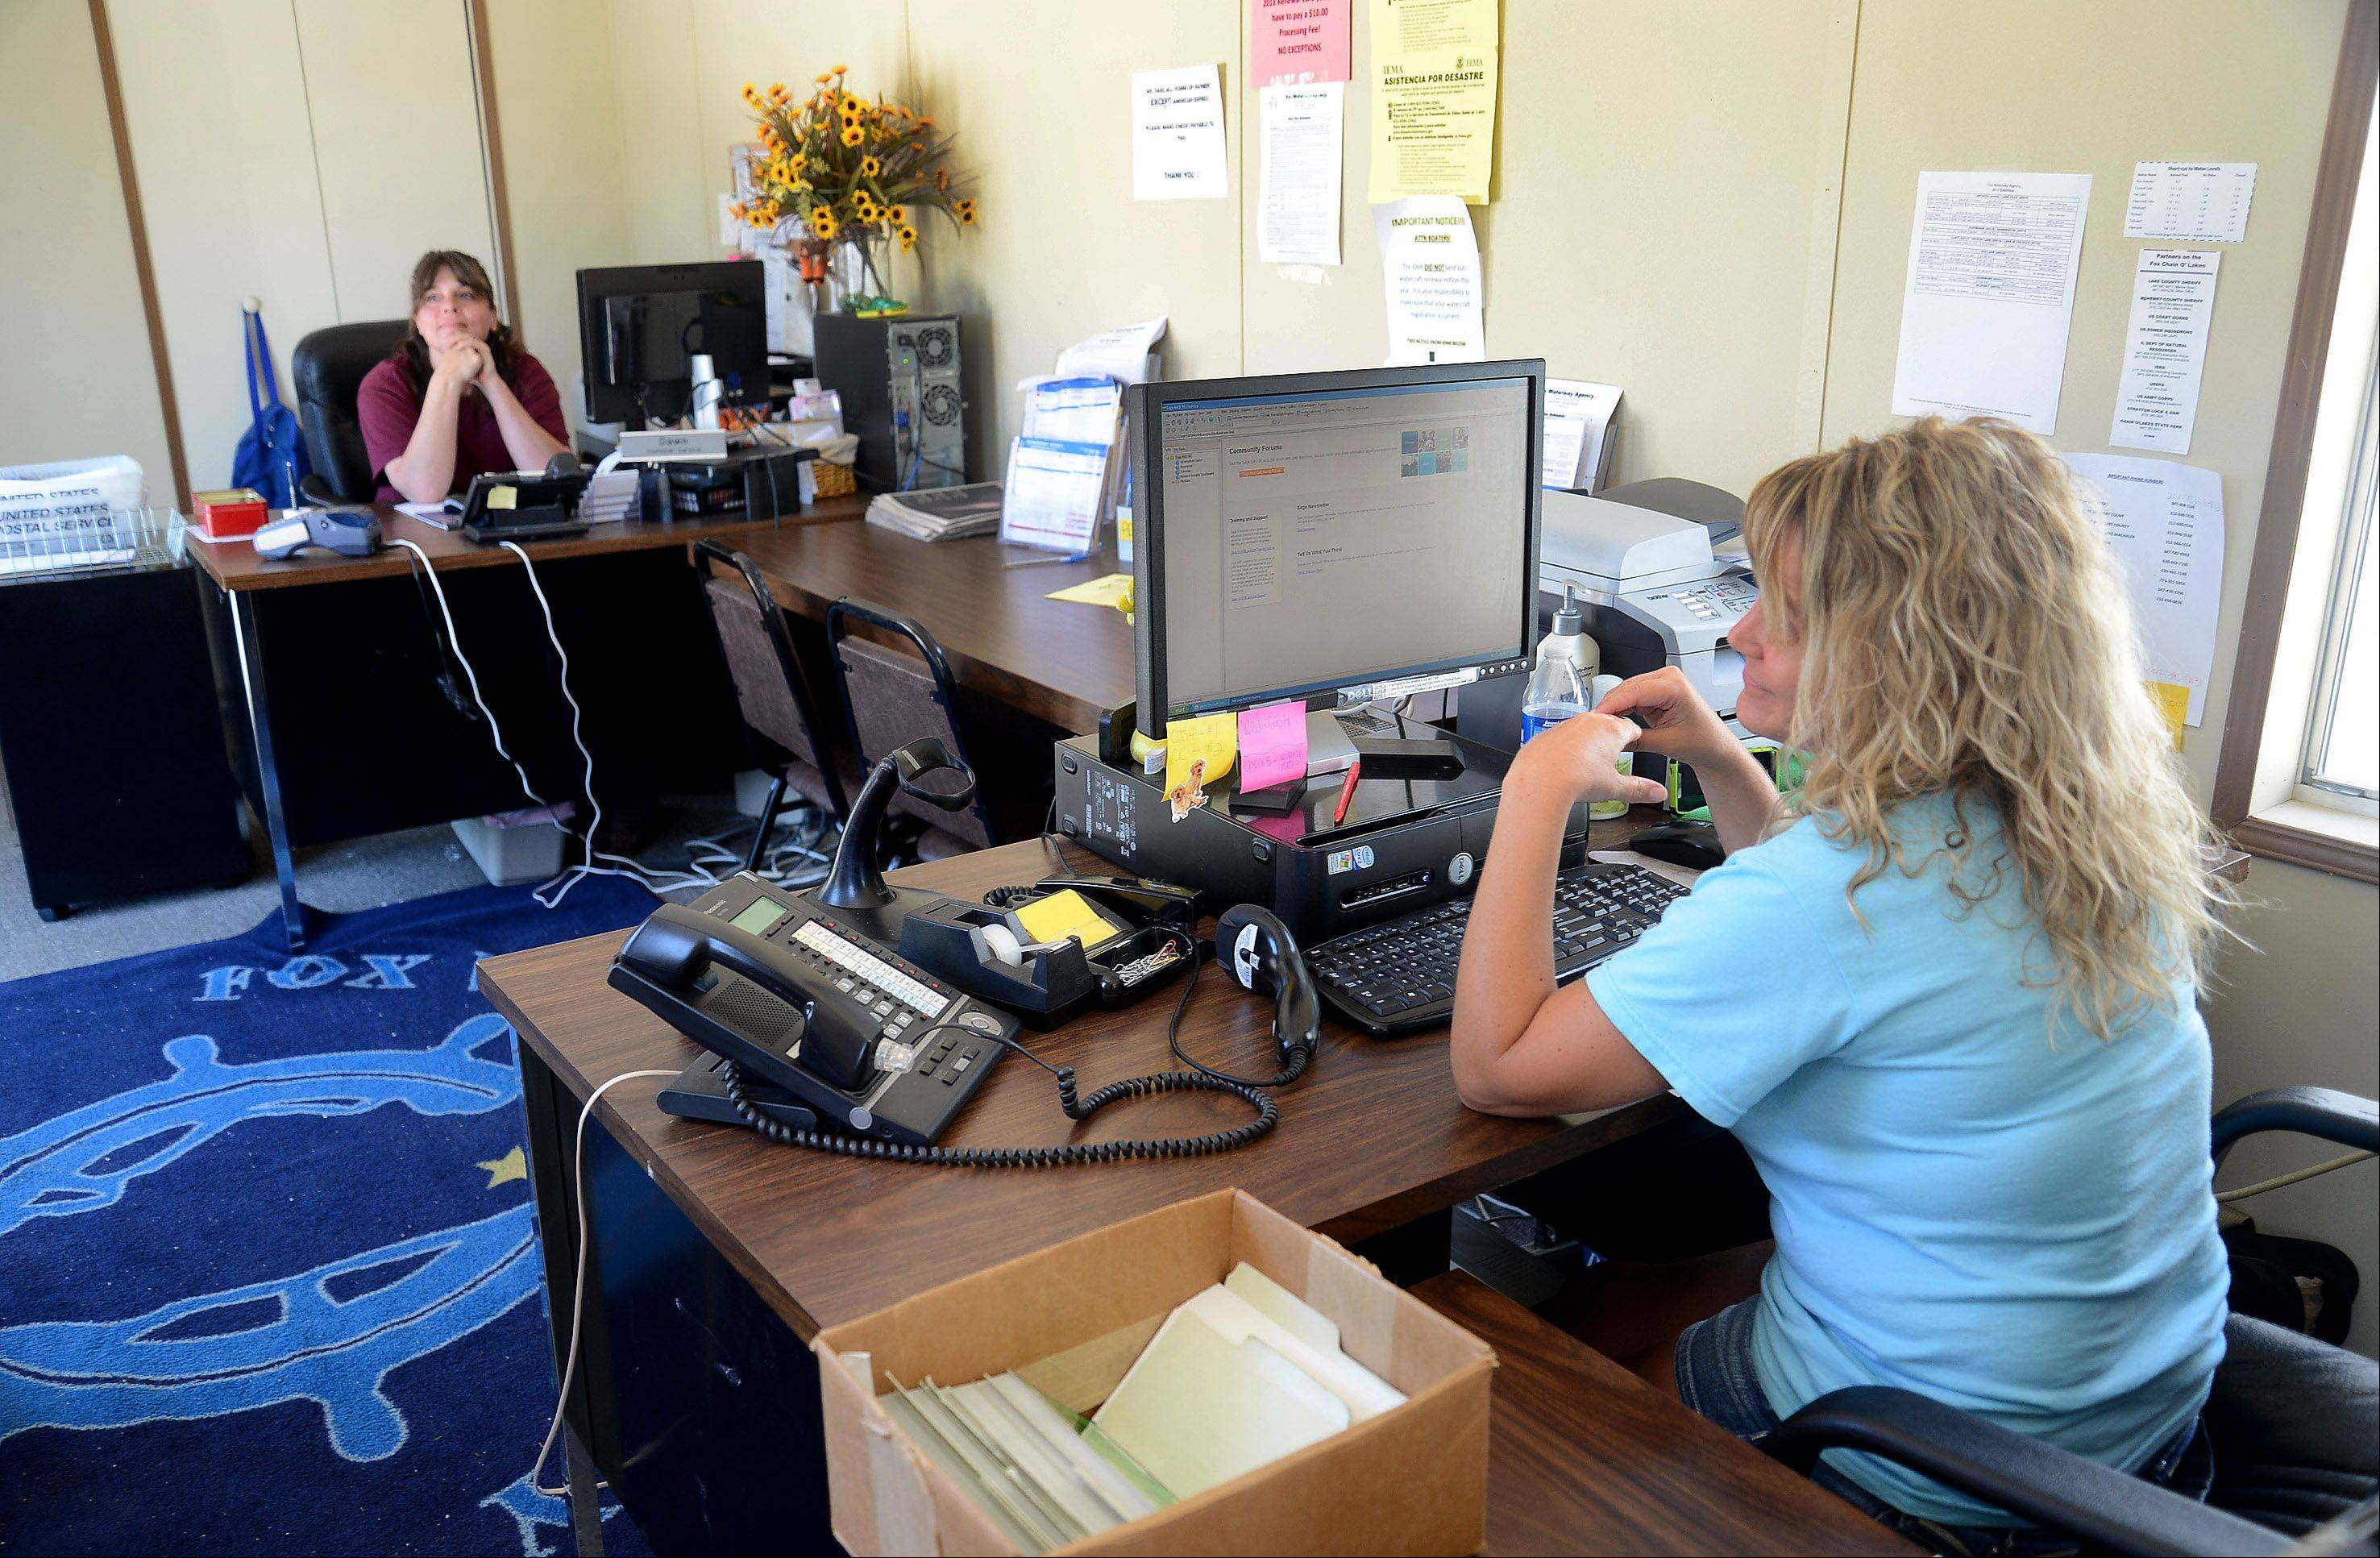 Fox Waterway Agency employees Dawn Miklitsch and Kristine Pearson working in the cramped trailer that is the agency's temporary home in Fox Lake.